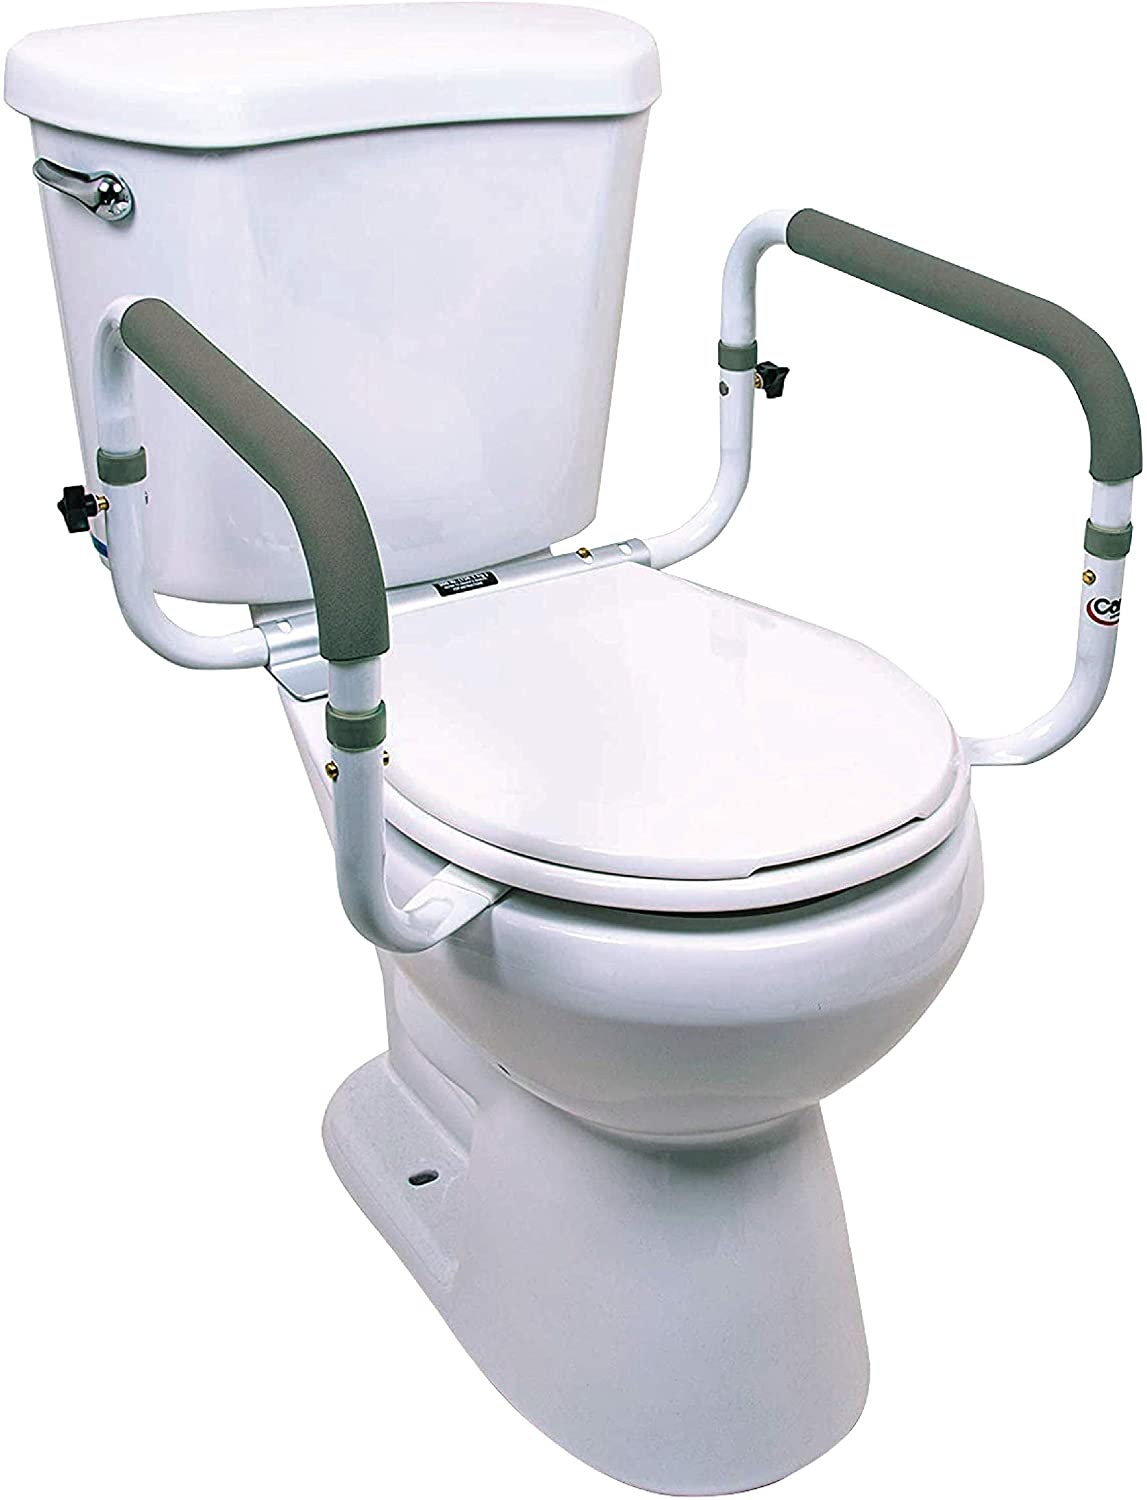 Carex Toilet Safety Frame - Toilet Safety Rails With Adjustable Width